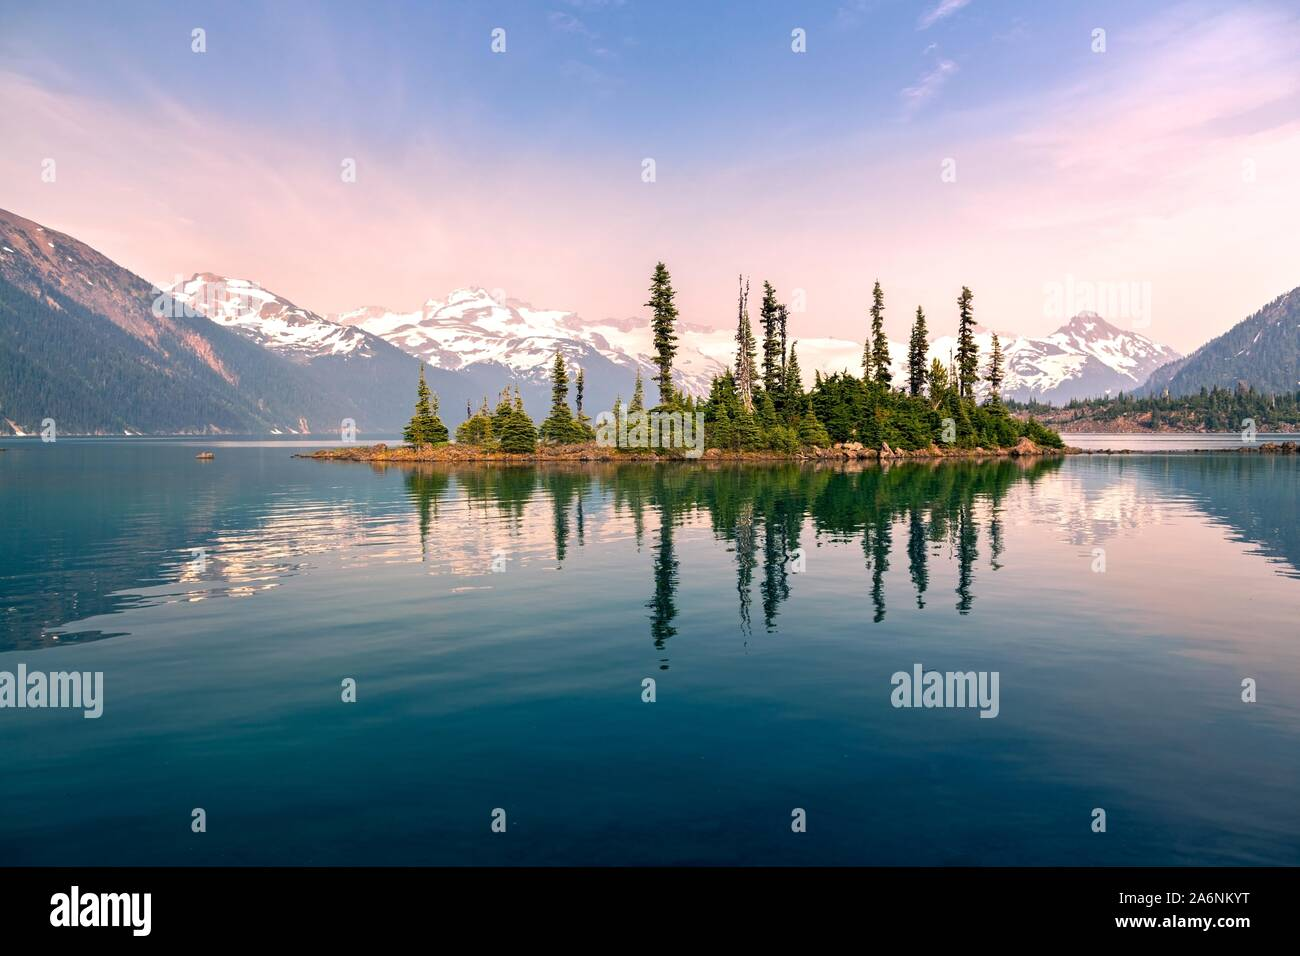 garibaldi-lake-calm-water-landscape-and-